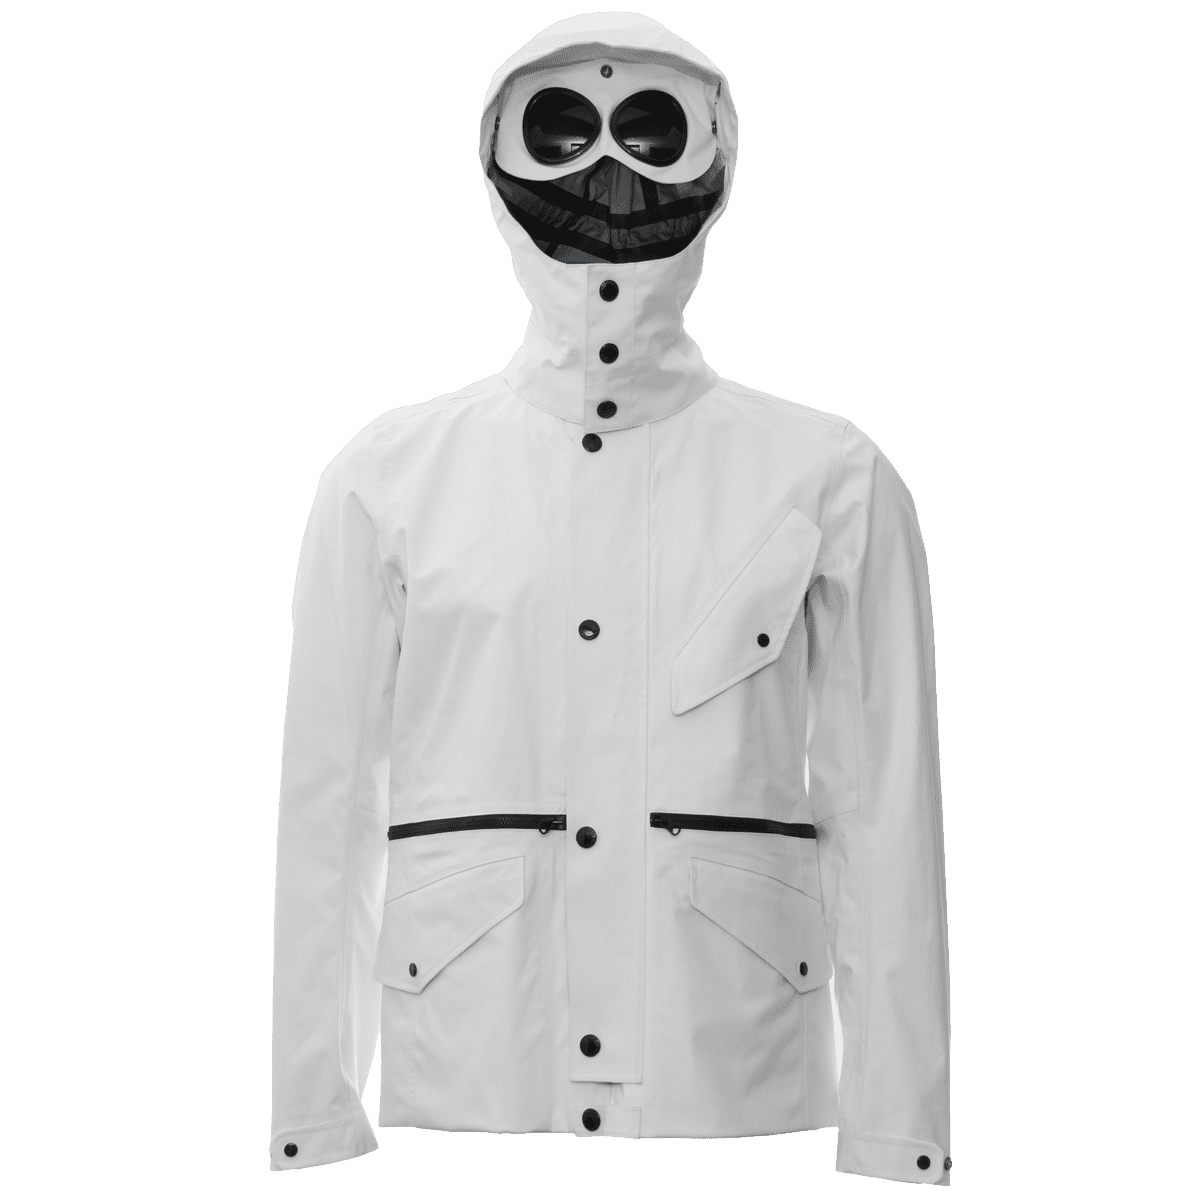 Cabinero Berlin Herrenmode SS17 C.P.Company Goggle Jacket 02CMOW122A005001A (6)